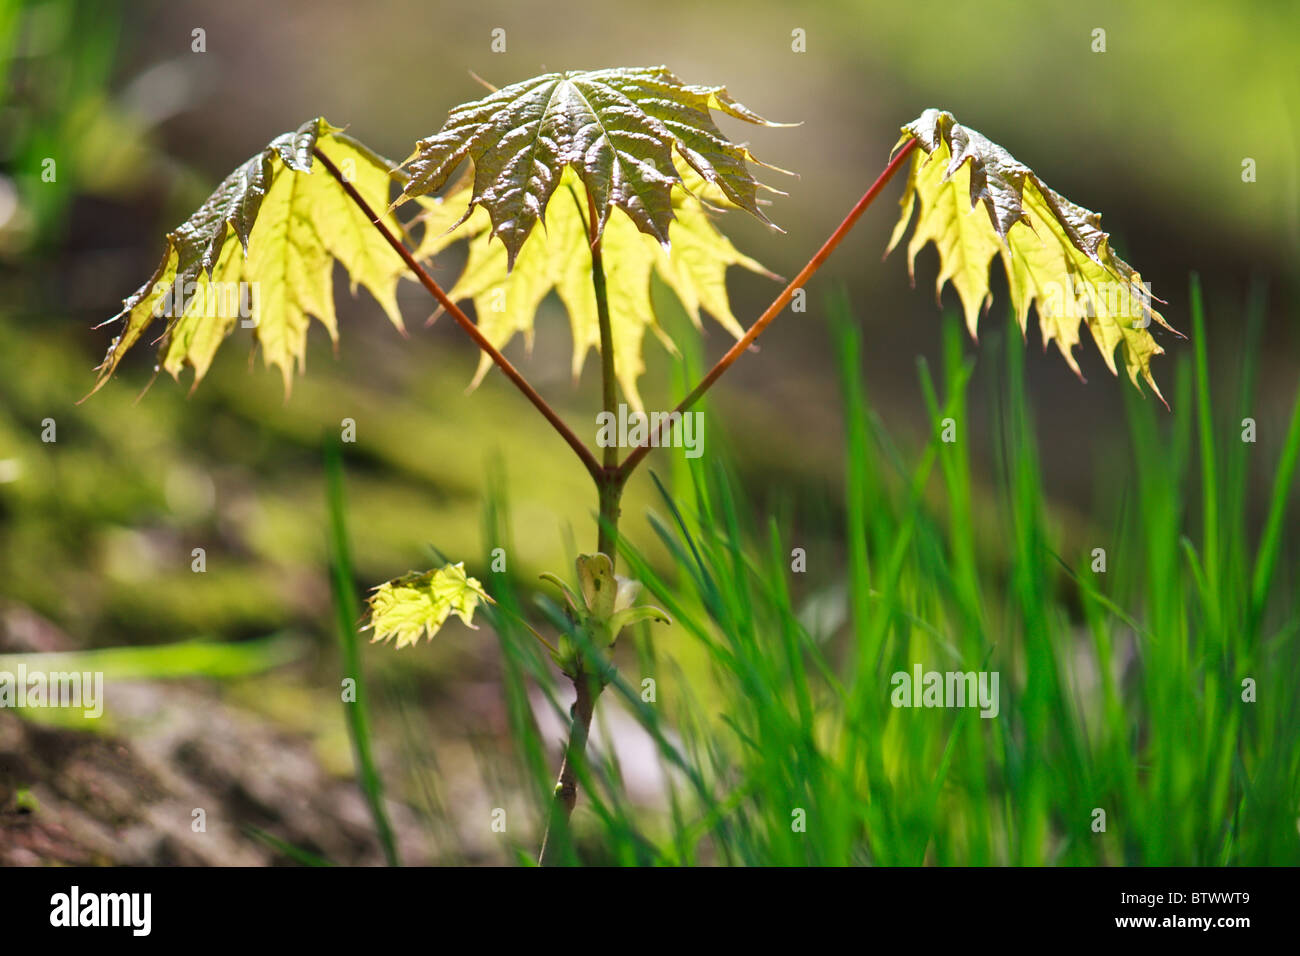 Growing young maple tree in spring (Acer ptalonoides) - Stock Image